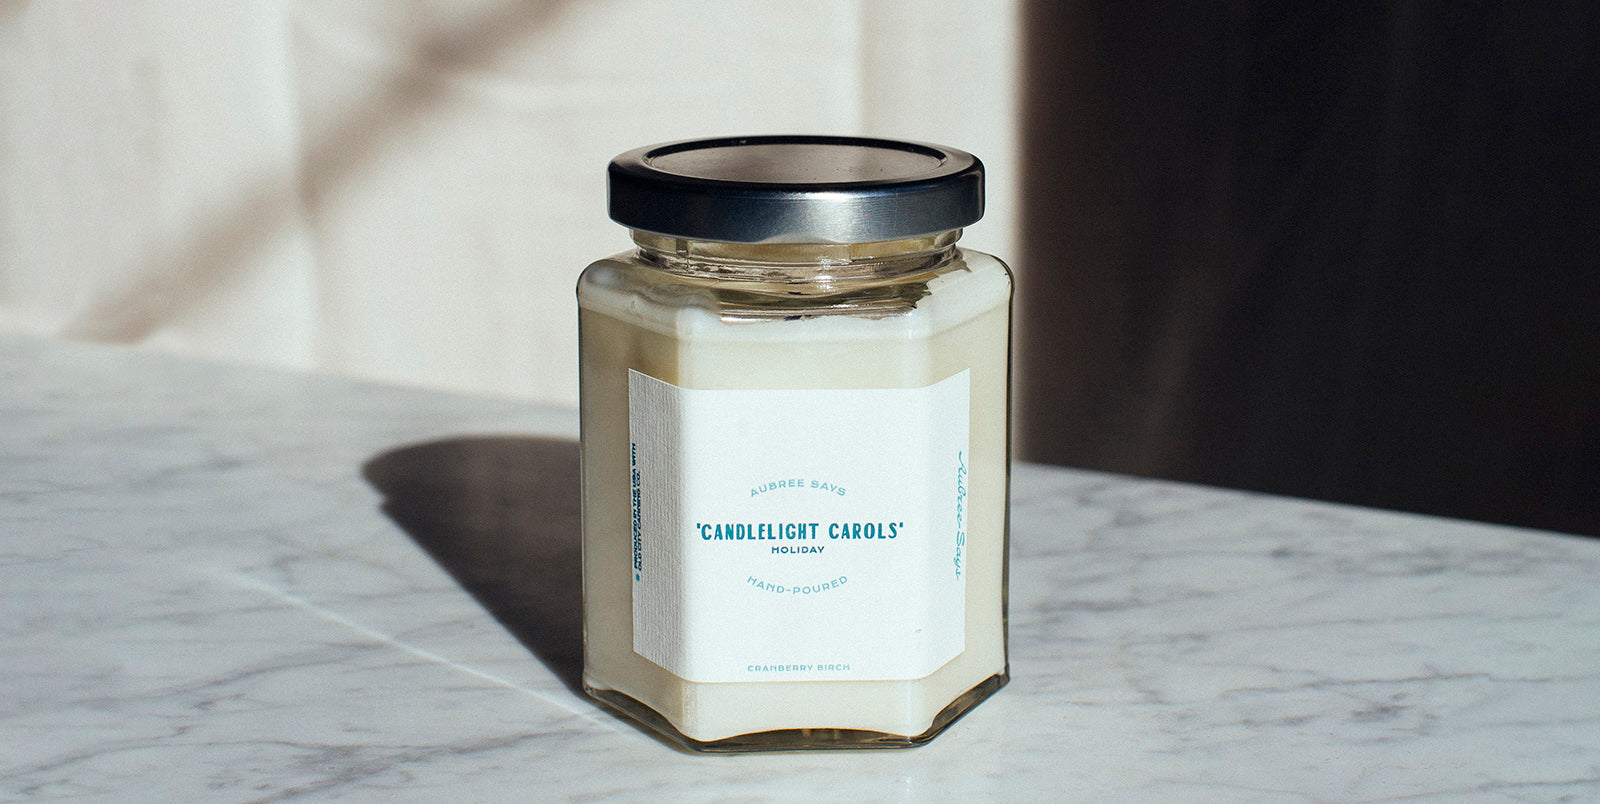 Candlelight carols scented candle